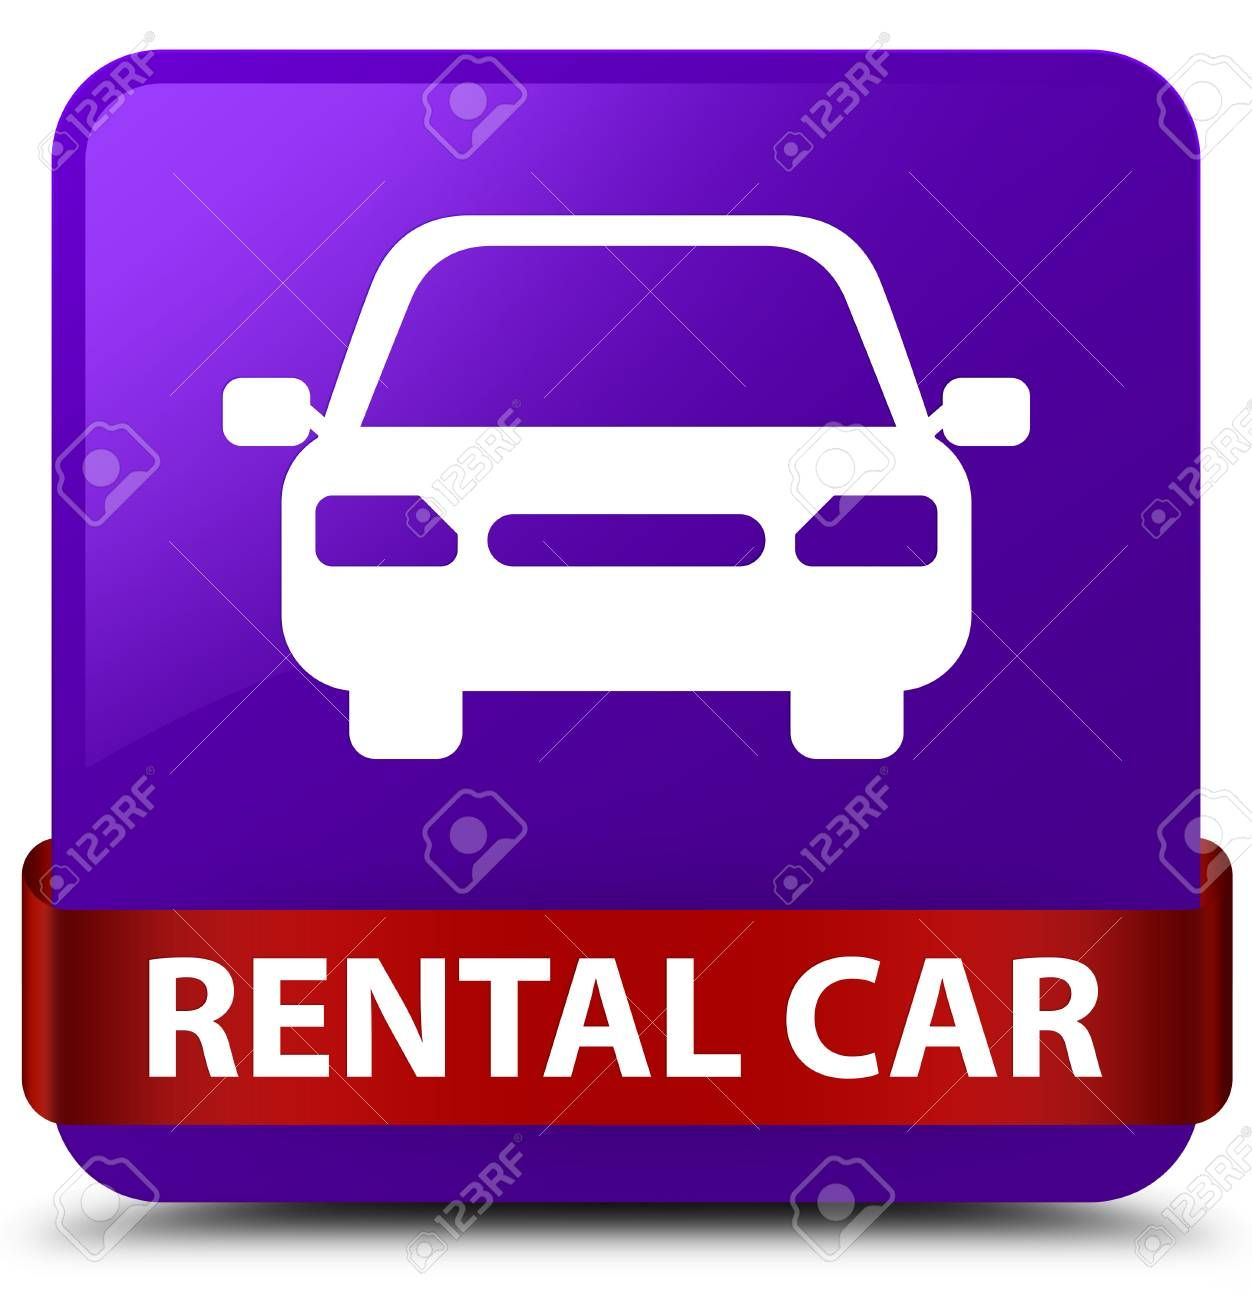 Rental Car Isolated On Purple Square Button With Red Ribbon In Middle Abstract Illustration Ad Purple Square Car Rental Red Ribbon Art Images